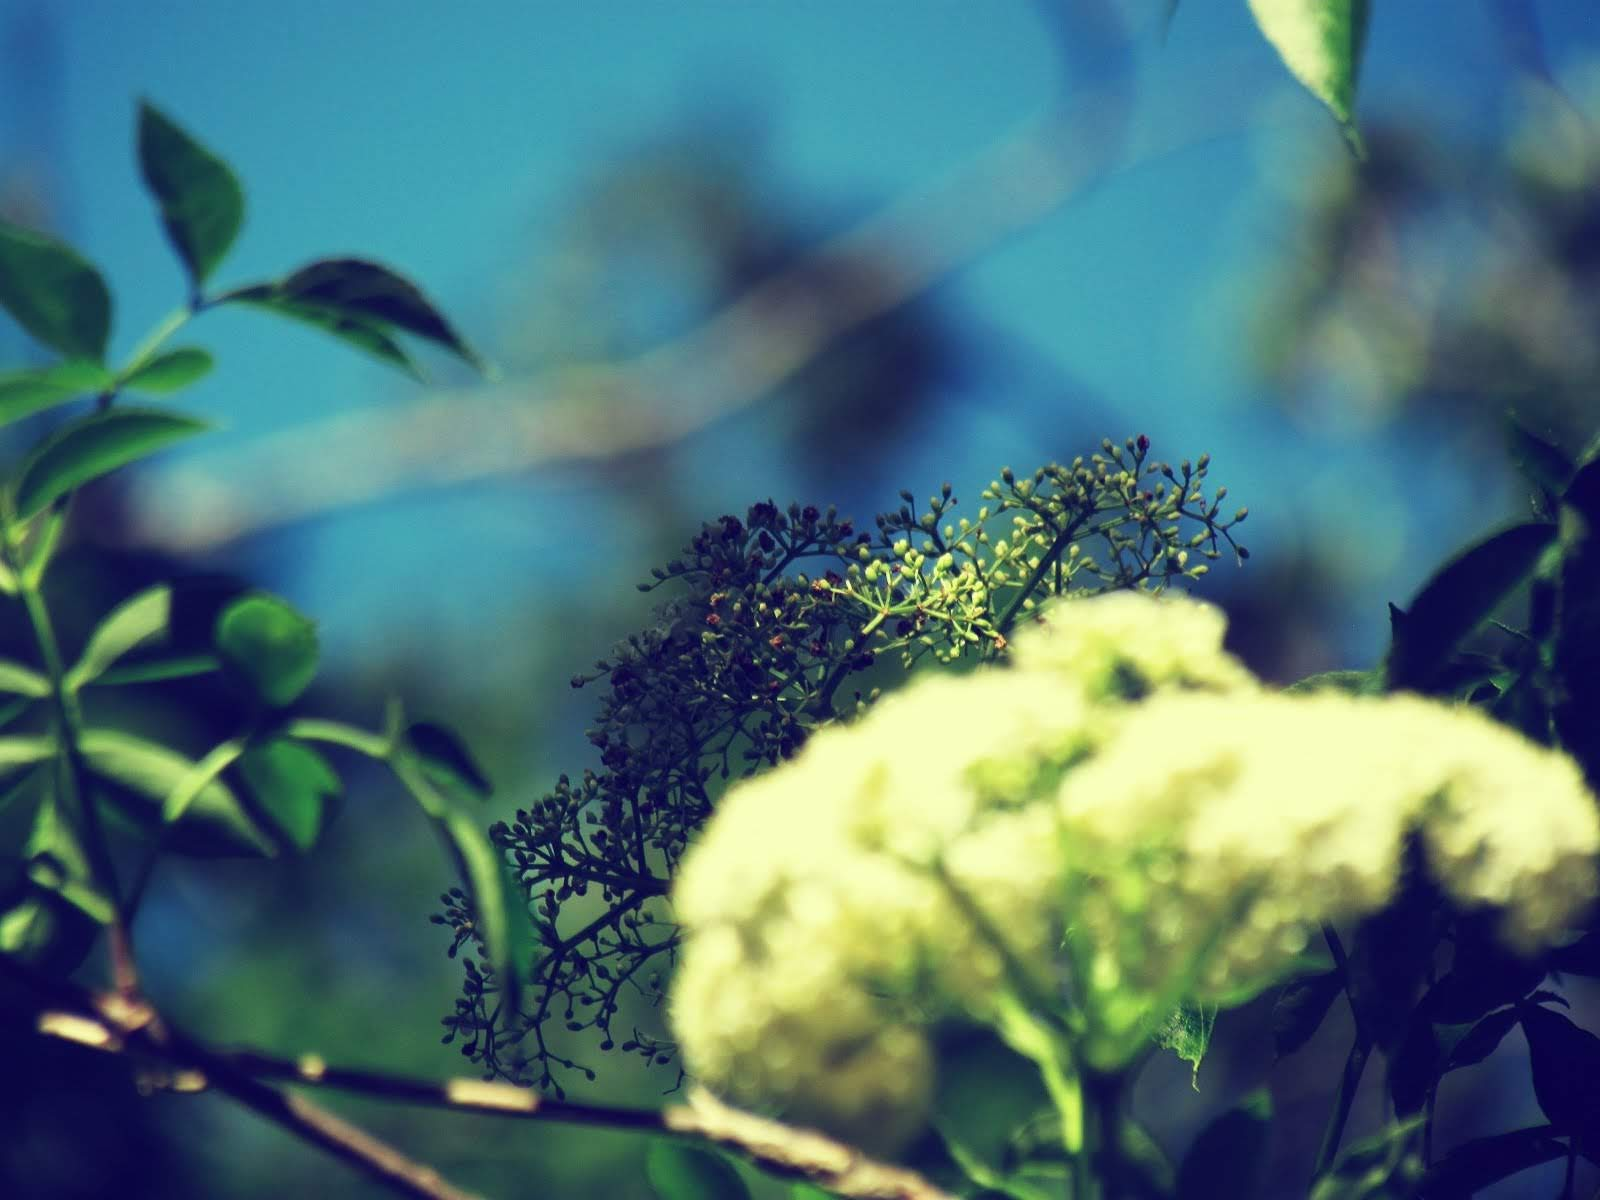 The magical properties of a flowered yarrow plant in a Florida wild forest